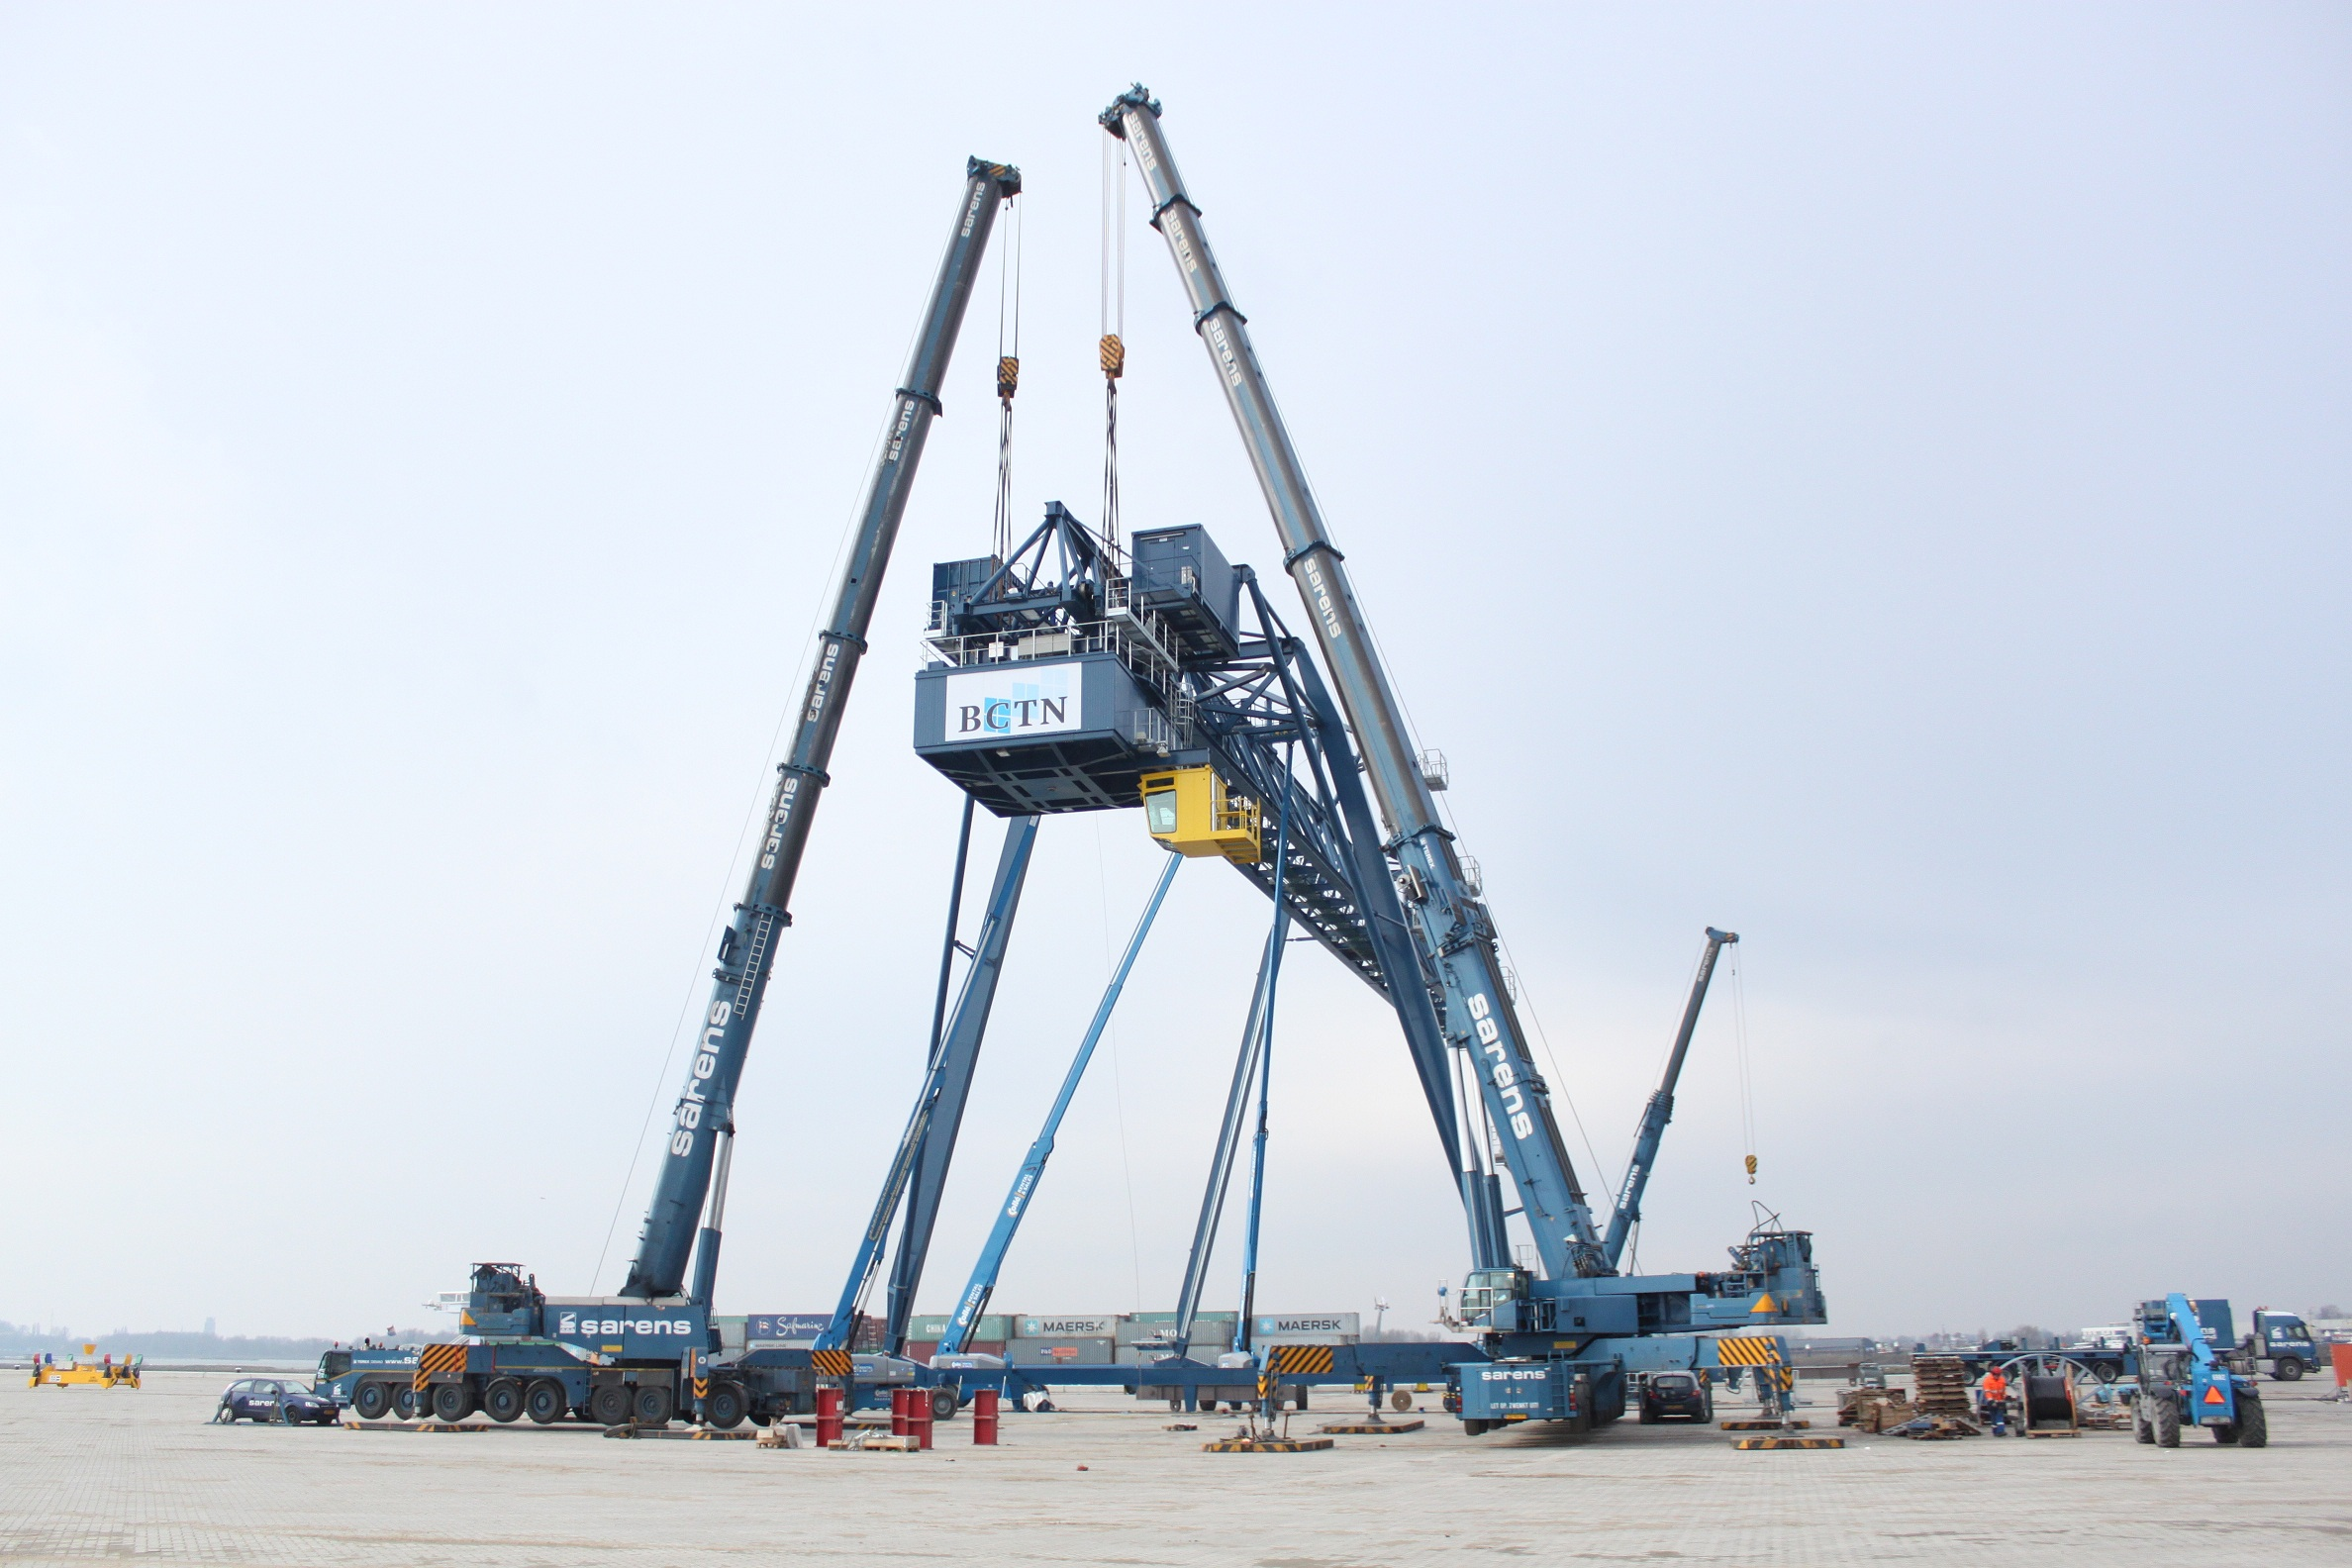 GENIE HEAVY DUTY BOOM LIFTS HELP COMPLETE INTRICATE